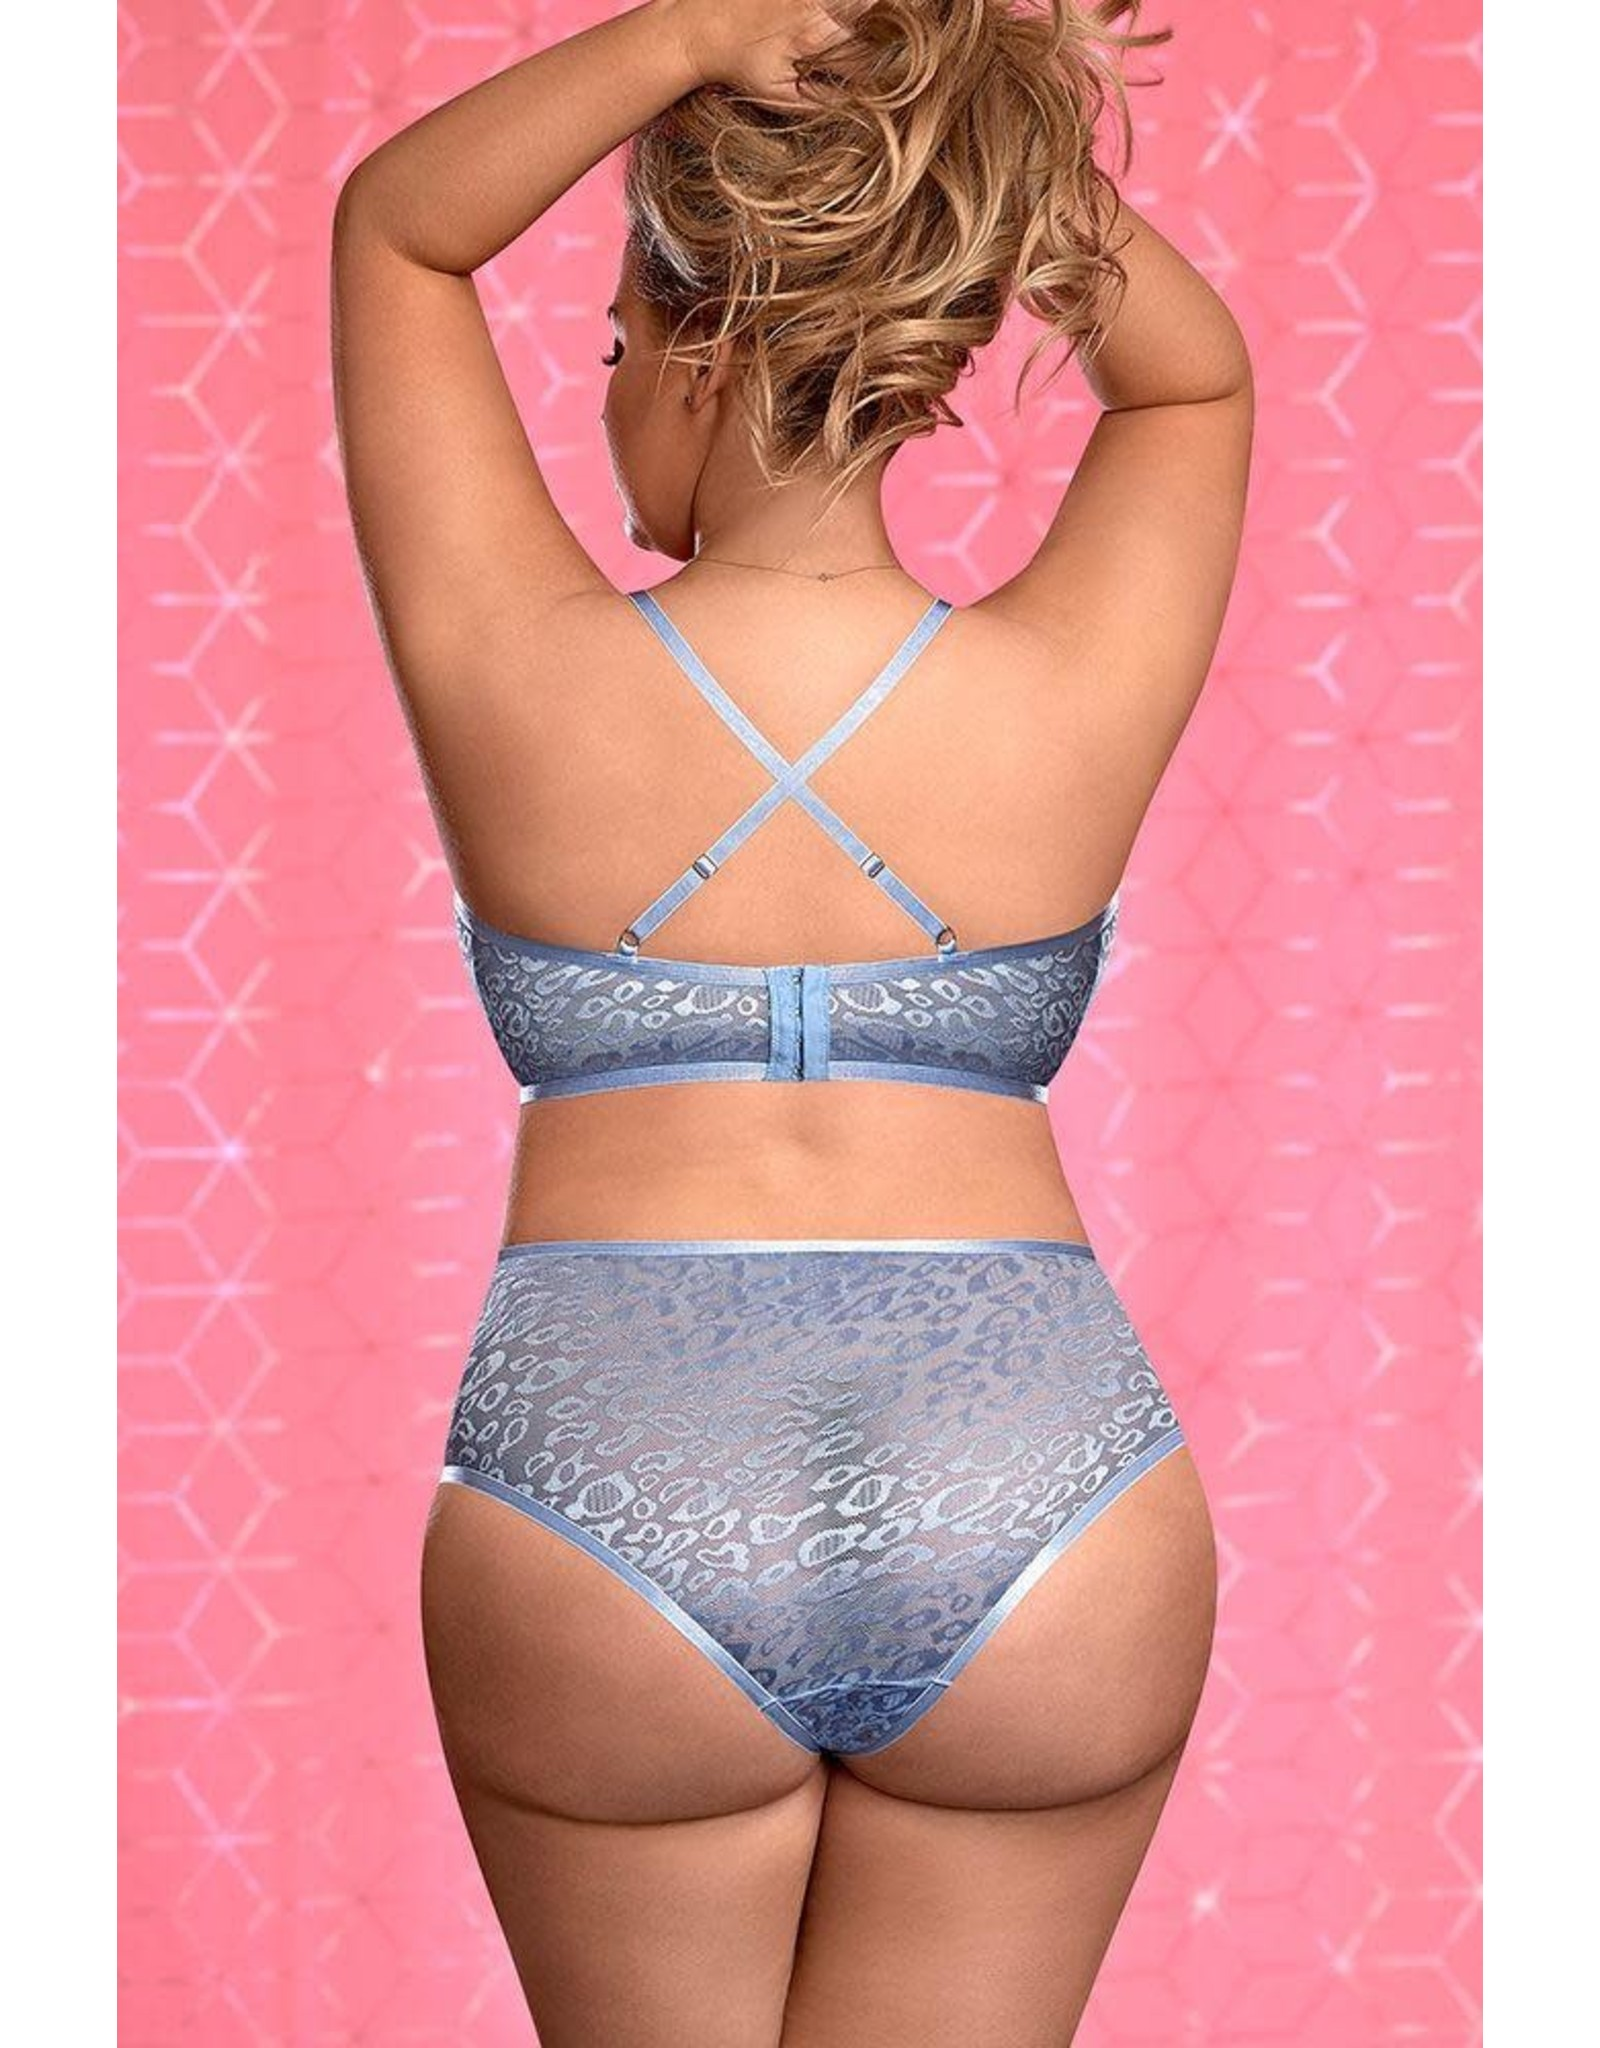 EXPOSED - URBAN JUNGLE BRALETTE & CROTCHLESS PANTY - QUEEN SIZE - PERIWINKLE